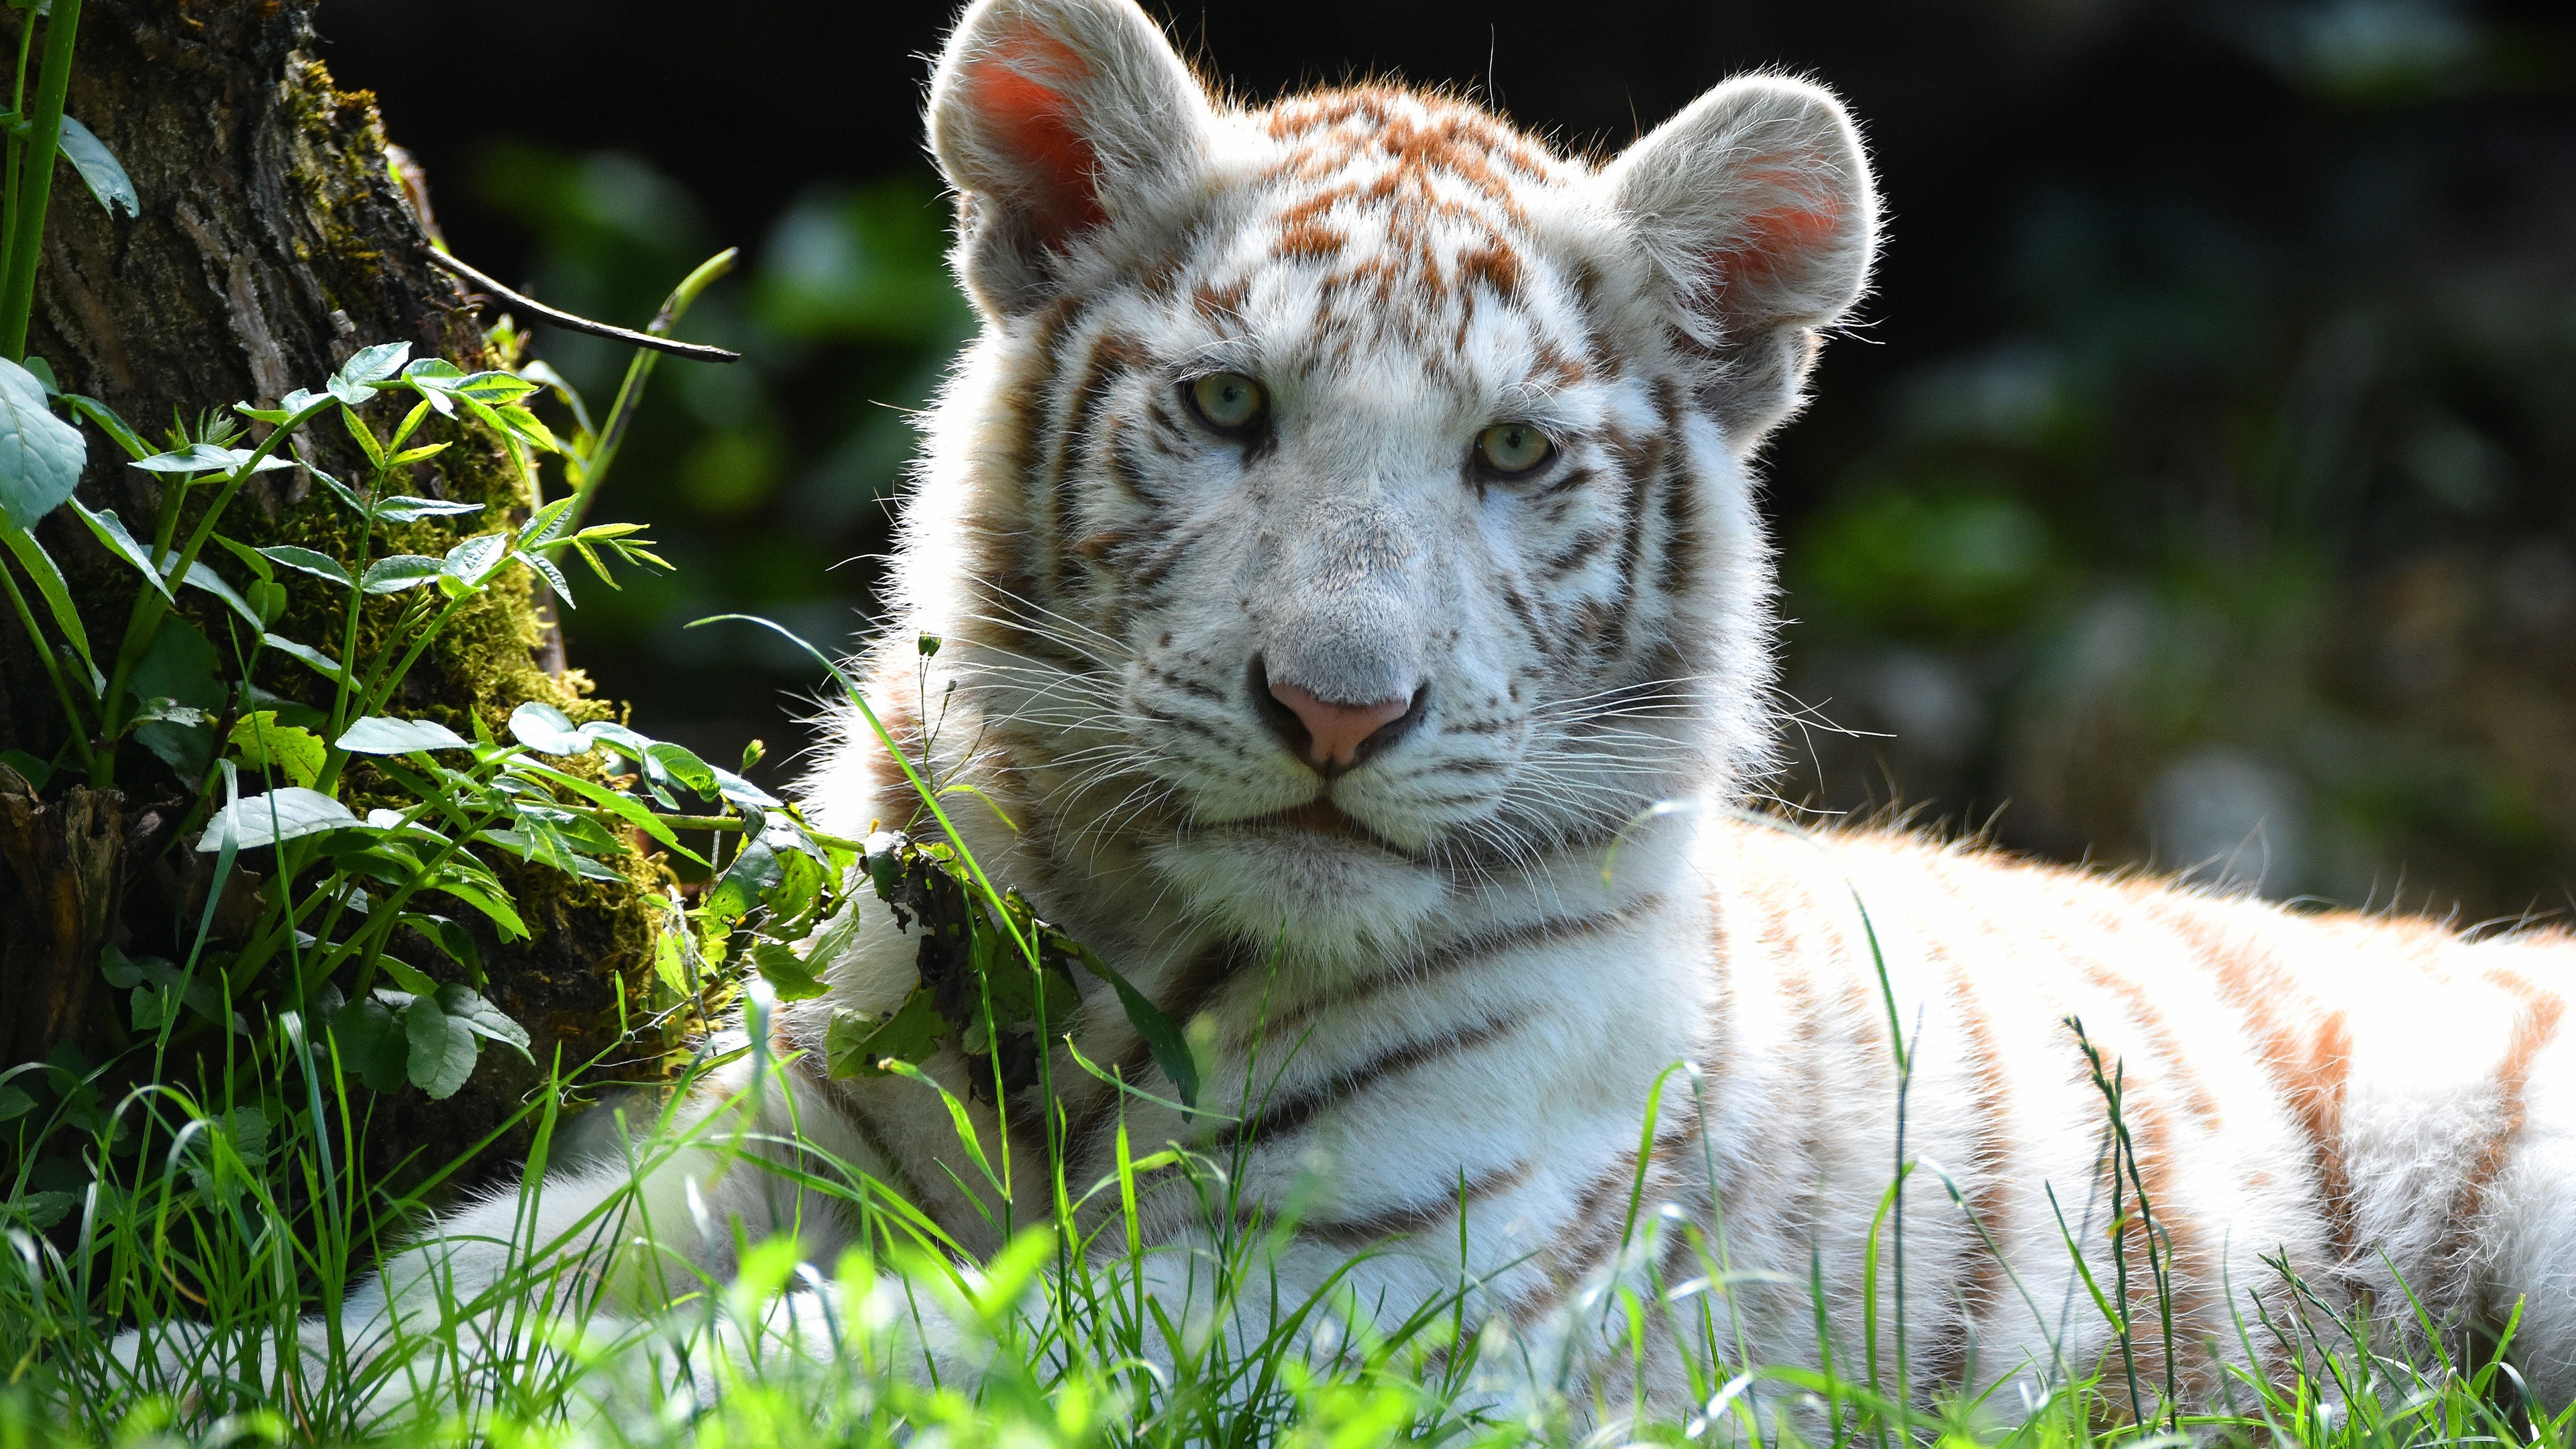 3 White Tiger Hd Wallpapers Backgrounds